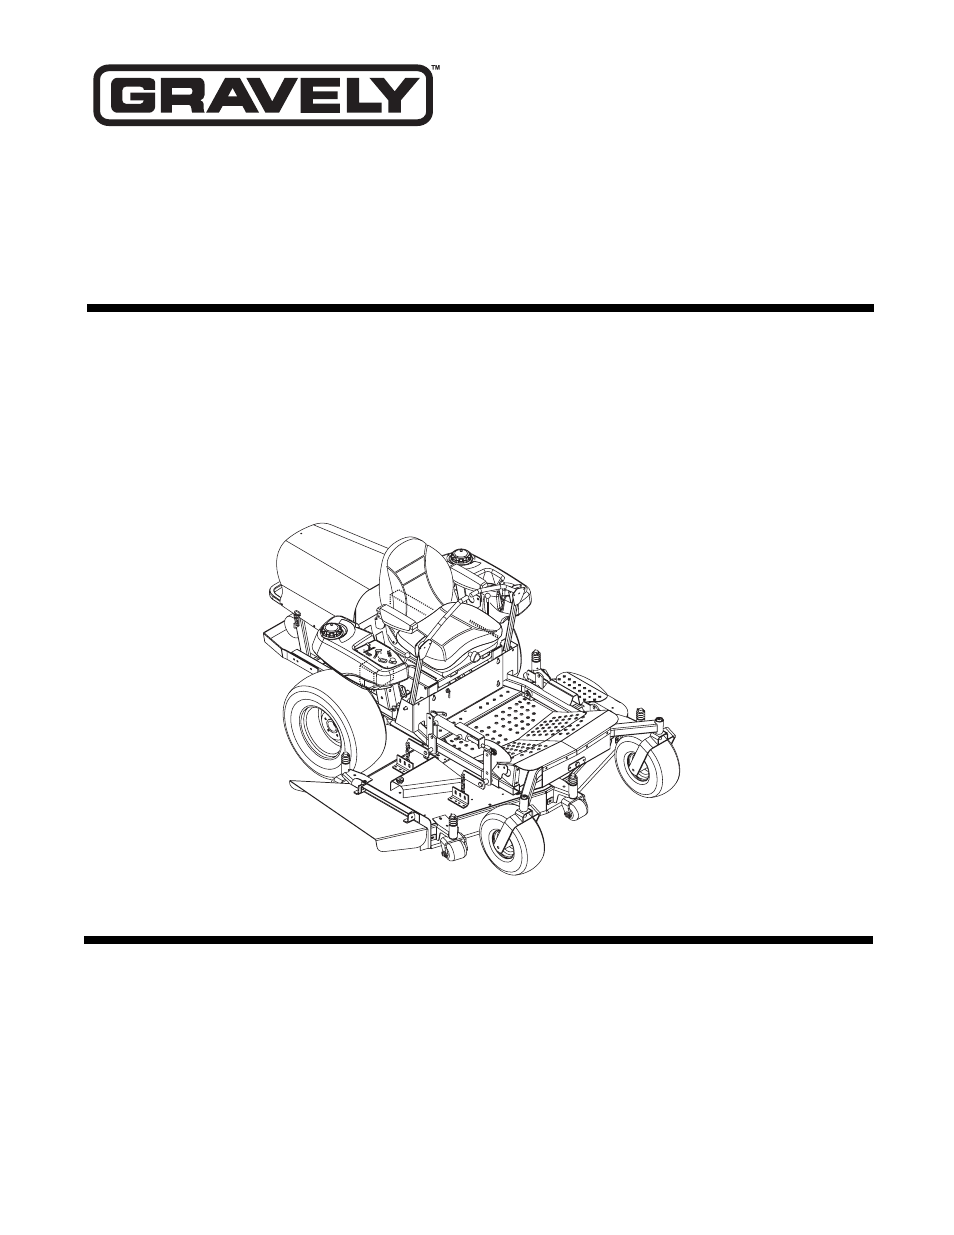 Gravely 260Z User Manual | 44 pages | Also for: Promaster 272Z, Promaster  250Z